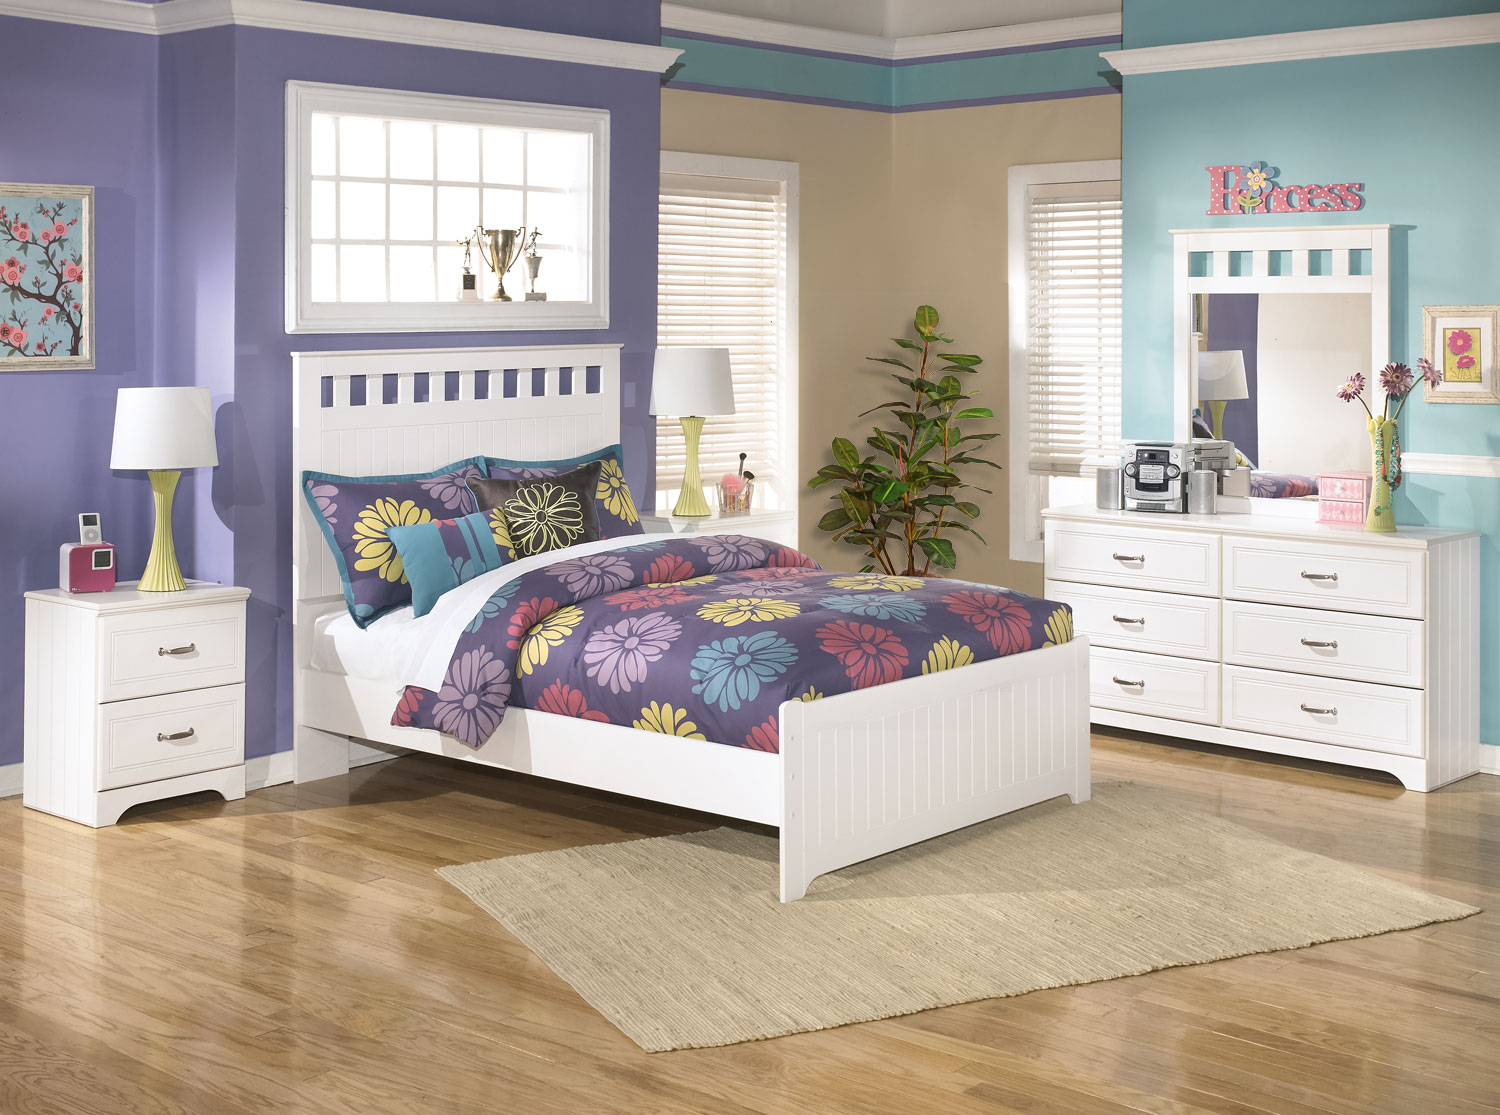 Kids Furniture - Lulu 6-Piece Full Panel Bedroom Package